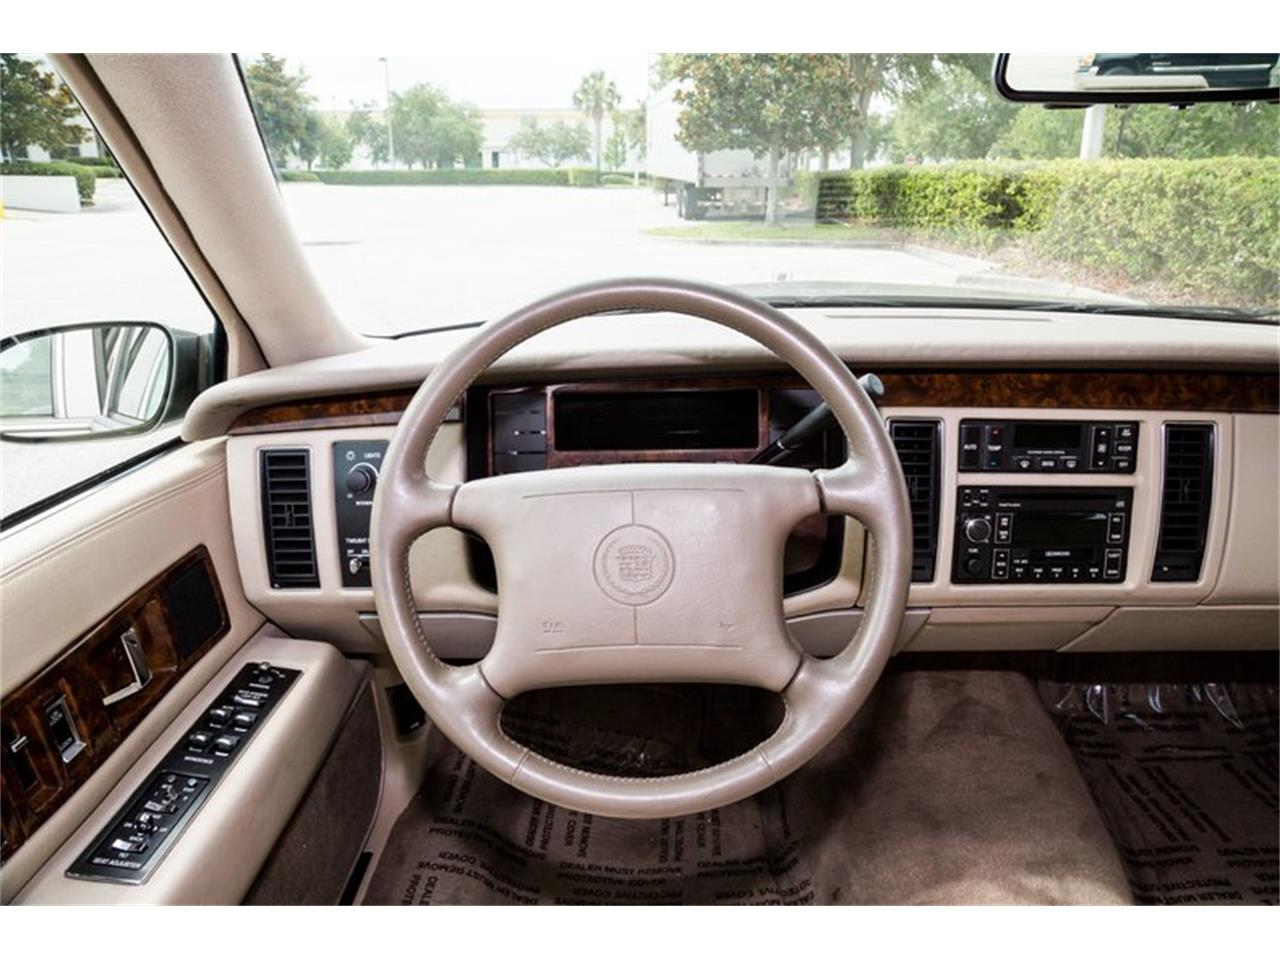 Large Picture of 1996 Cadillac Fleetwood located in Florida - $32,900.00 Offered by Orlando Classic Cars - Q8PS